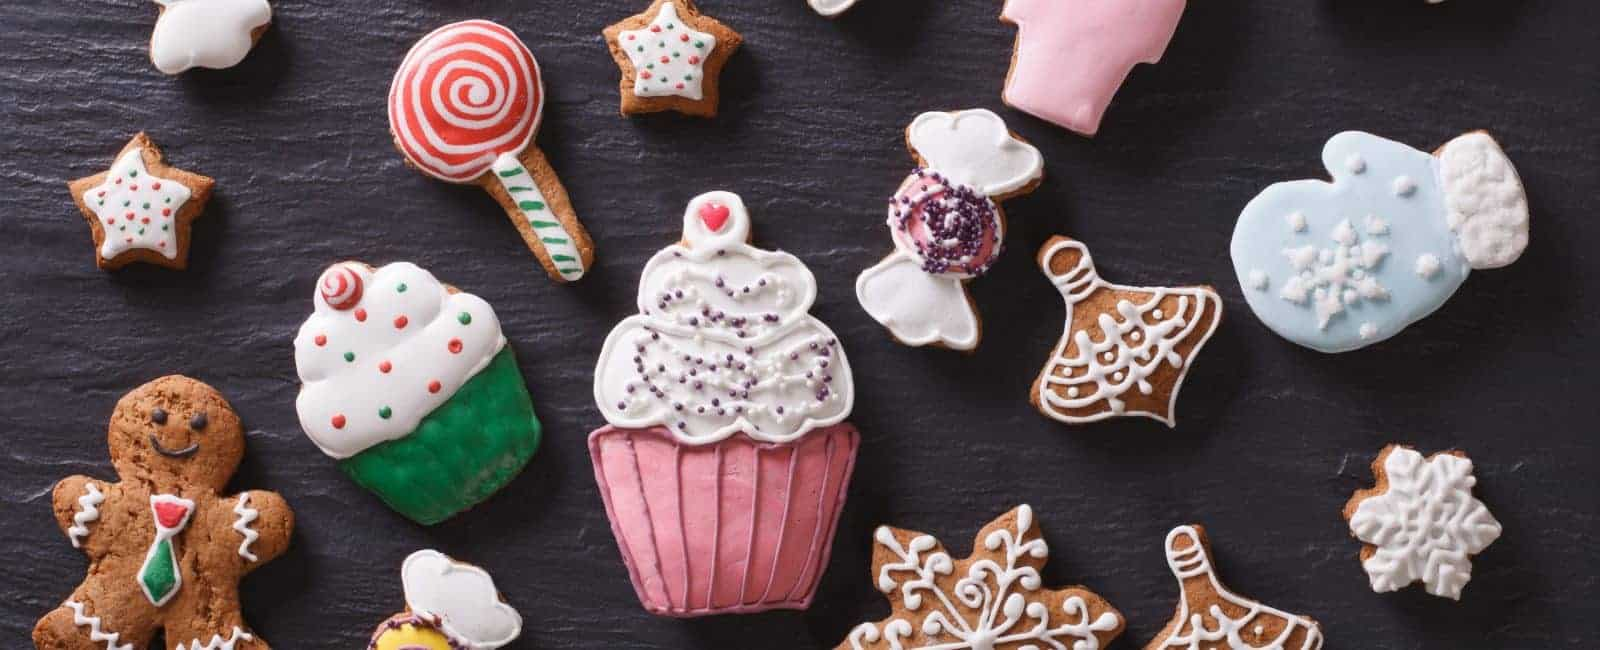 How to Host One AH-MAZE-ING Christmas Cookie Exchange 🎄🍪🎁